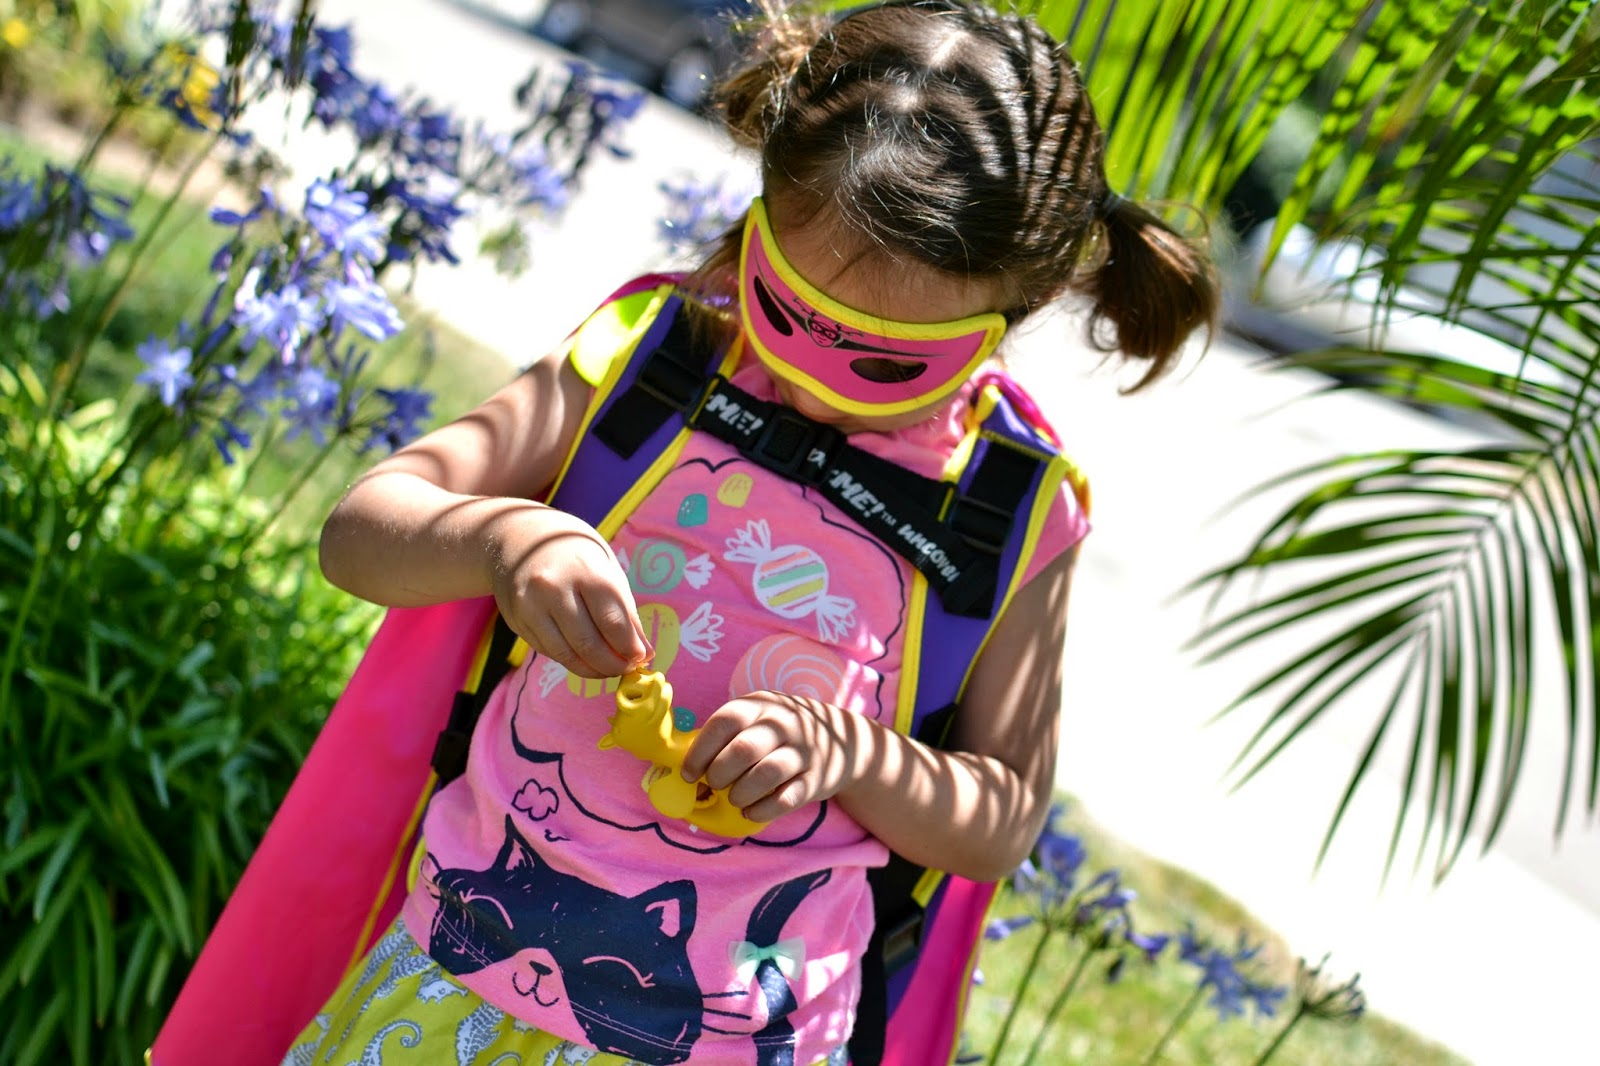 Mommy Testers, super hero dress up for girls, super hero gear for girls, super hero backpack, SuperME backpack